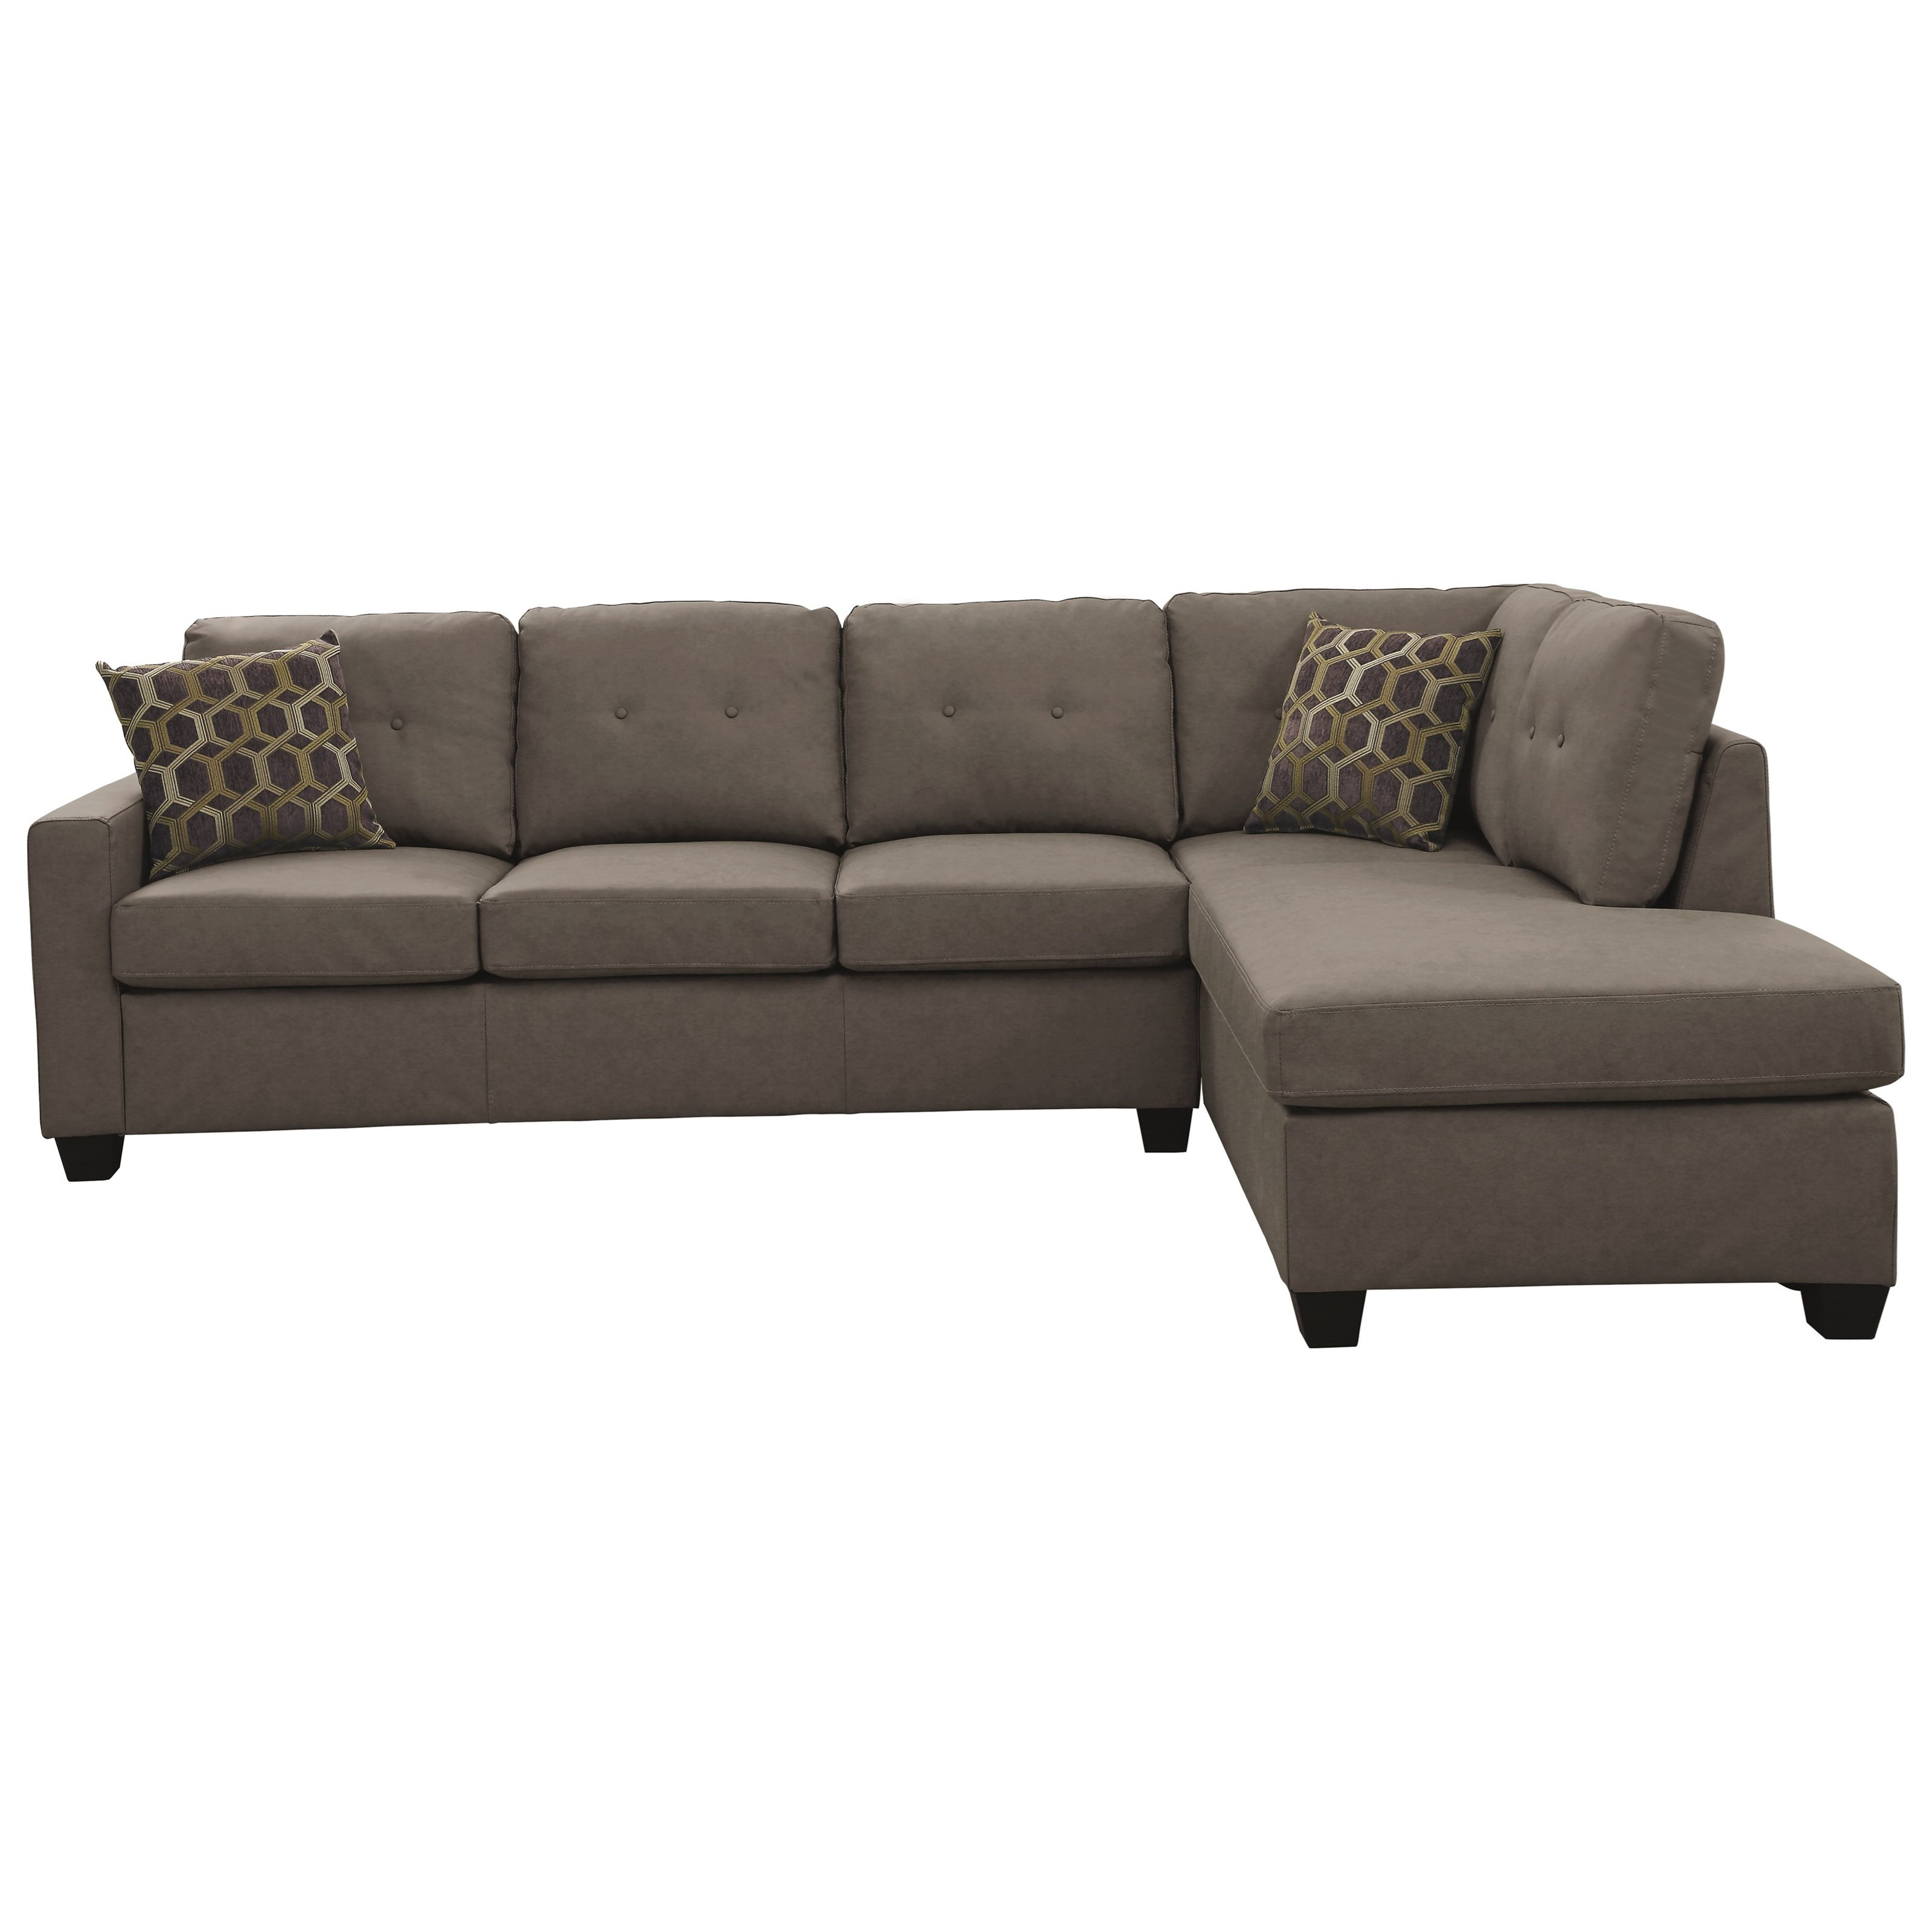 Coaster Powell 501687 Casual-Contemporary Sectional